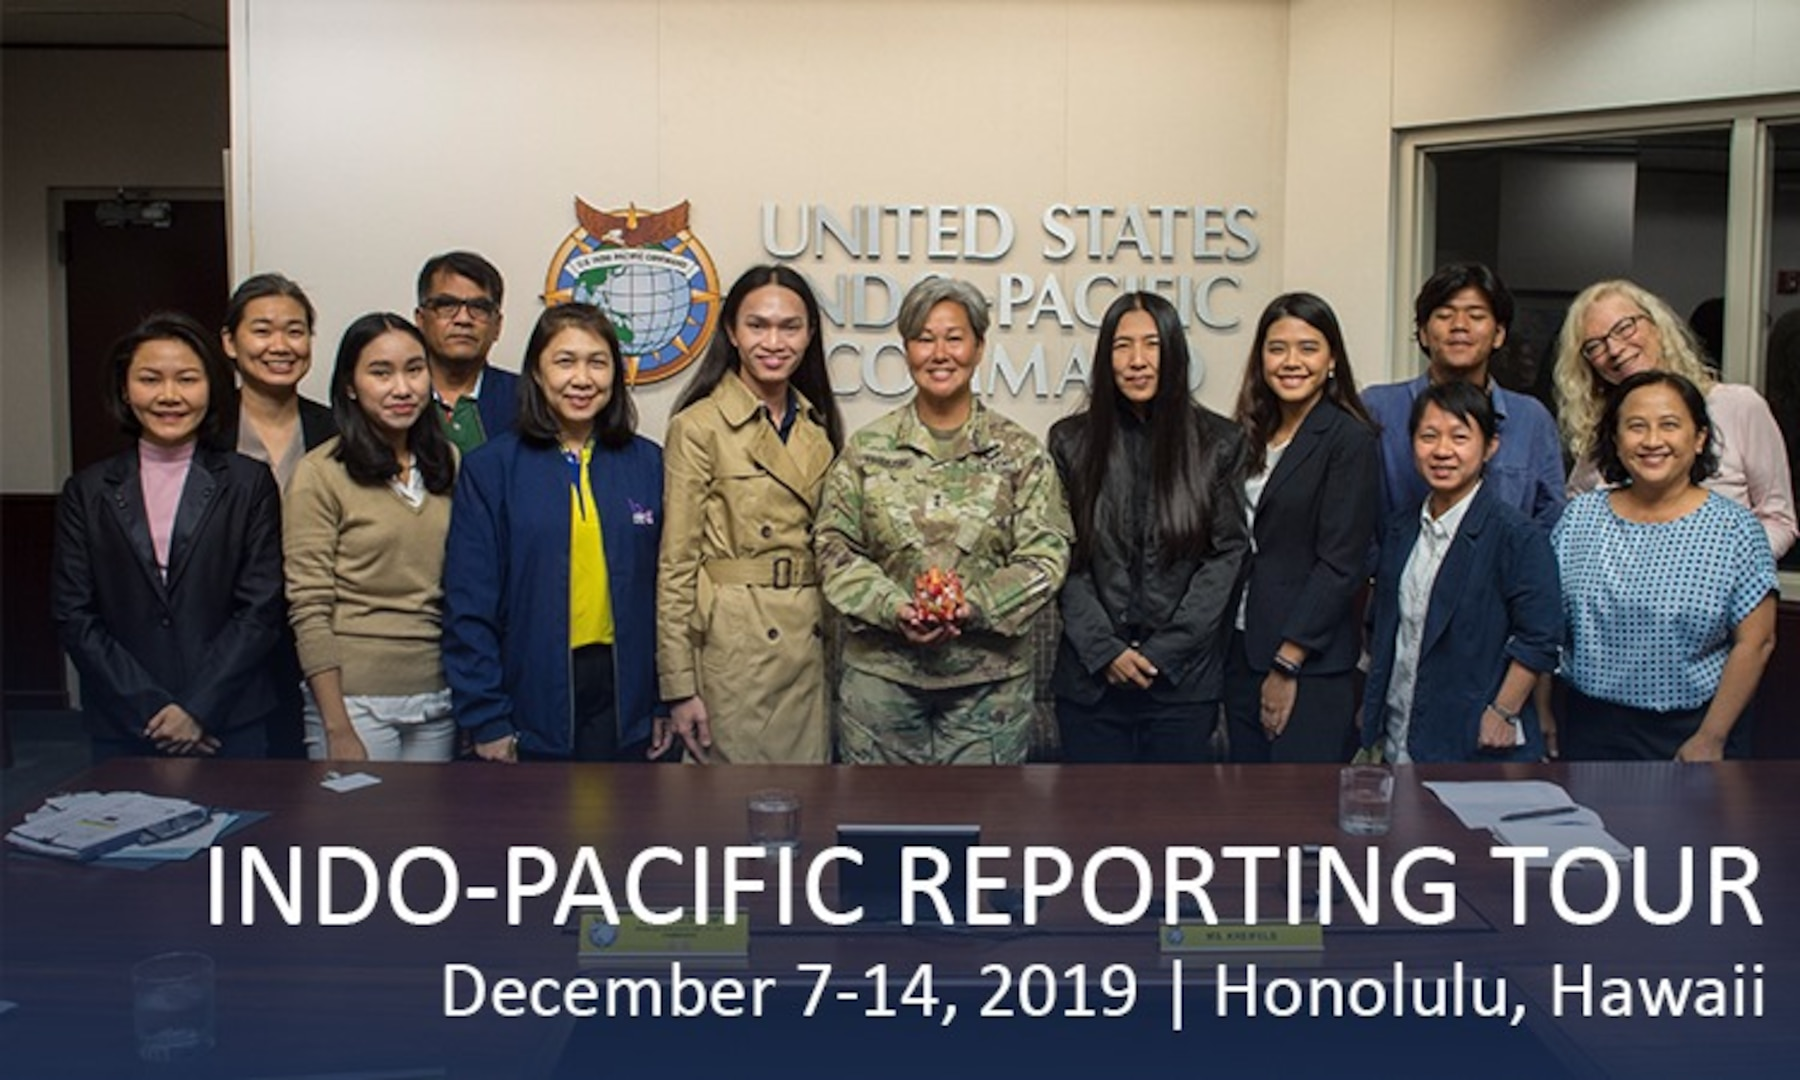 U.S. Indo-Pacific Reporting Tour